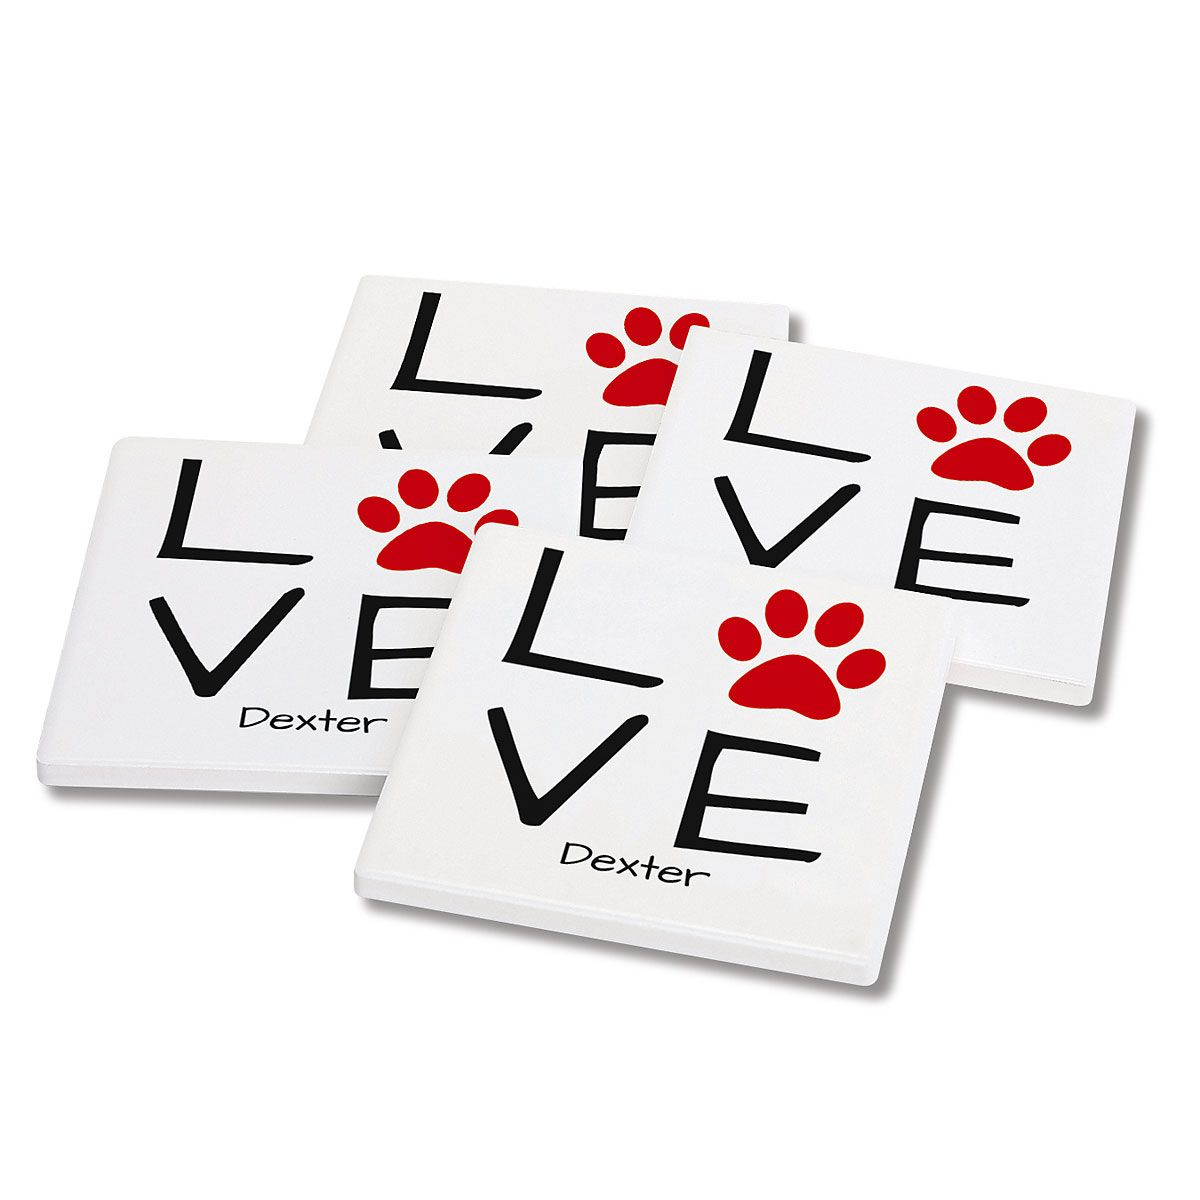 Pawprint Personalized Ceramic Coasters